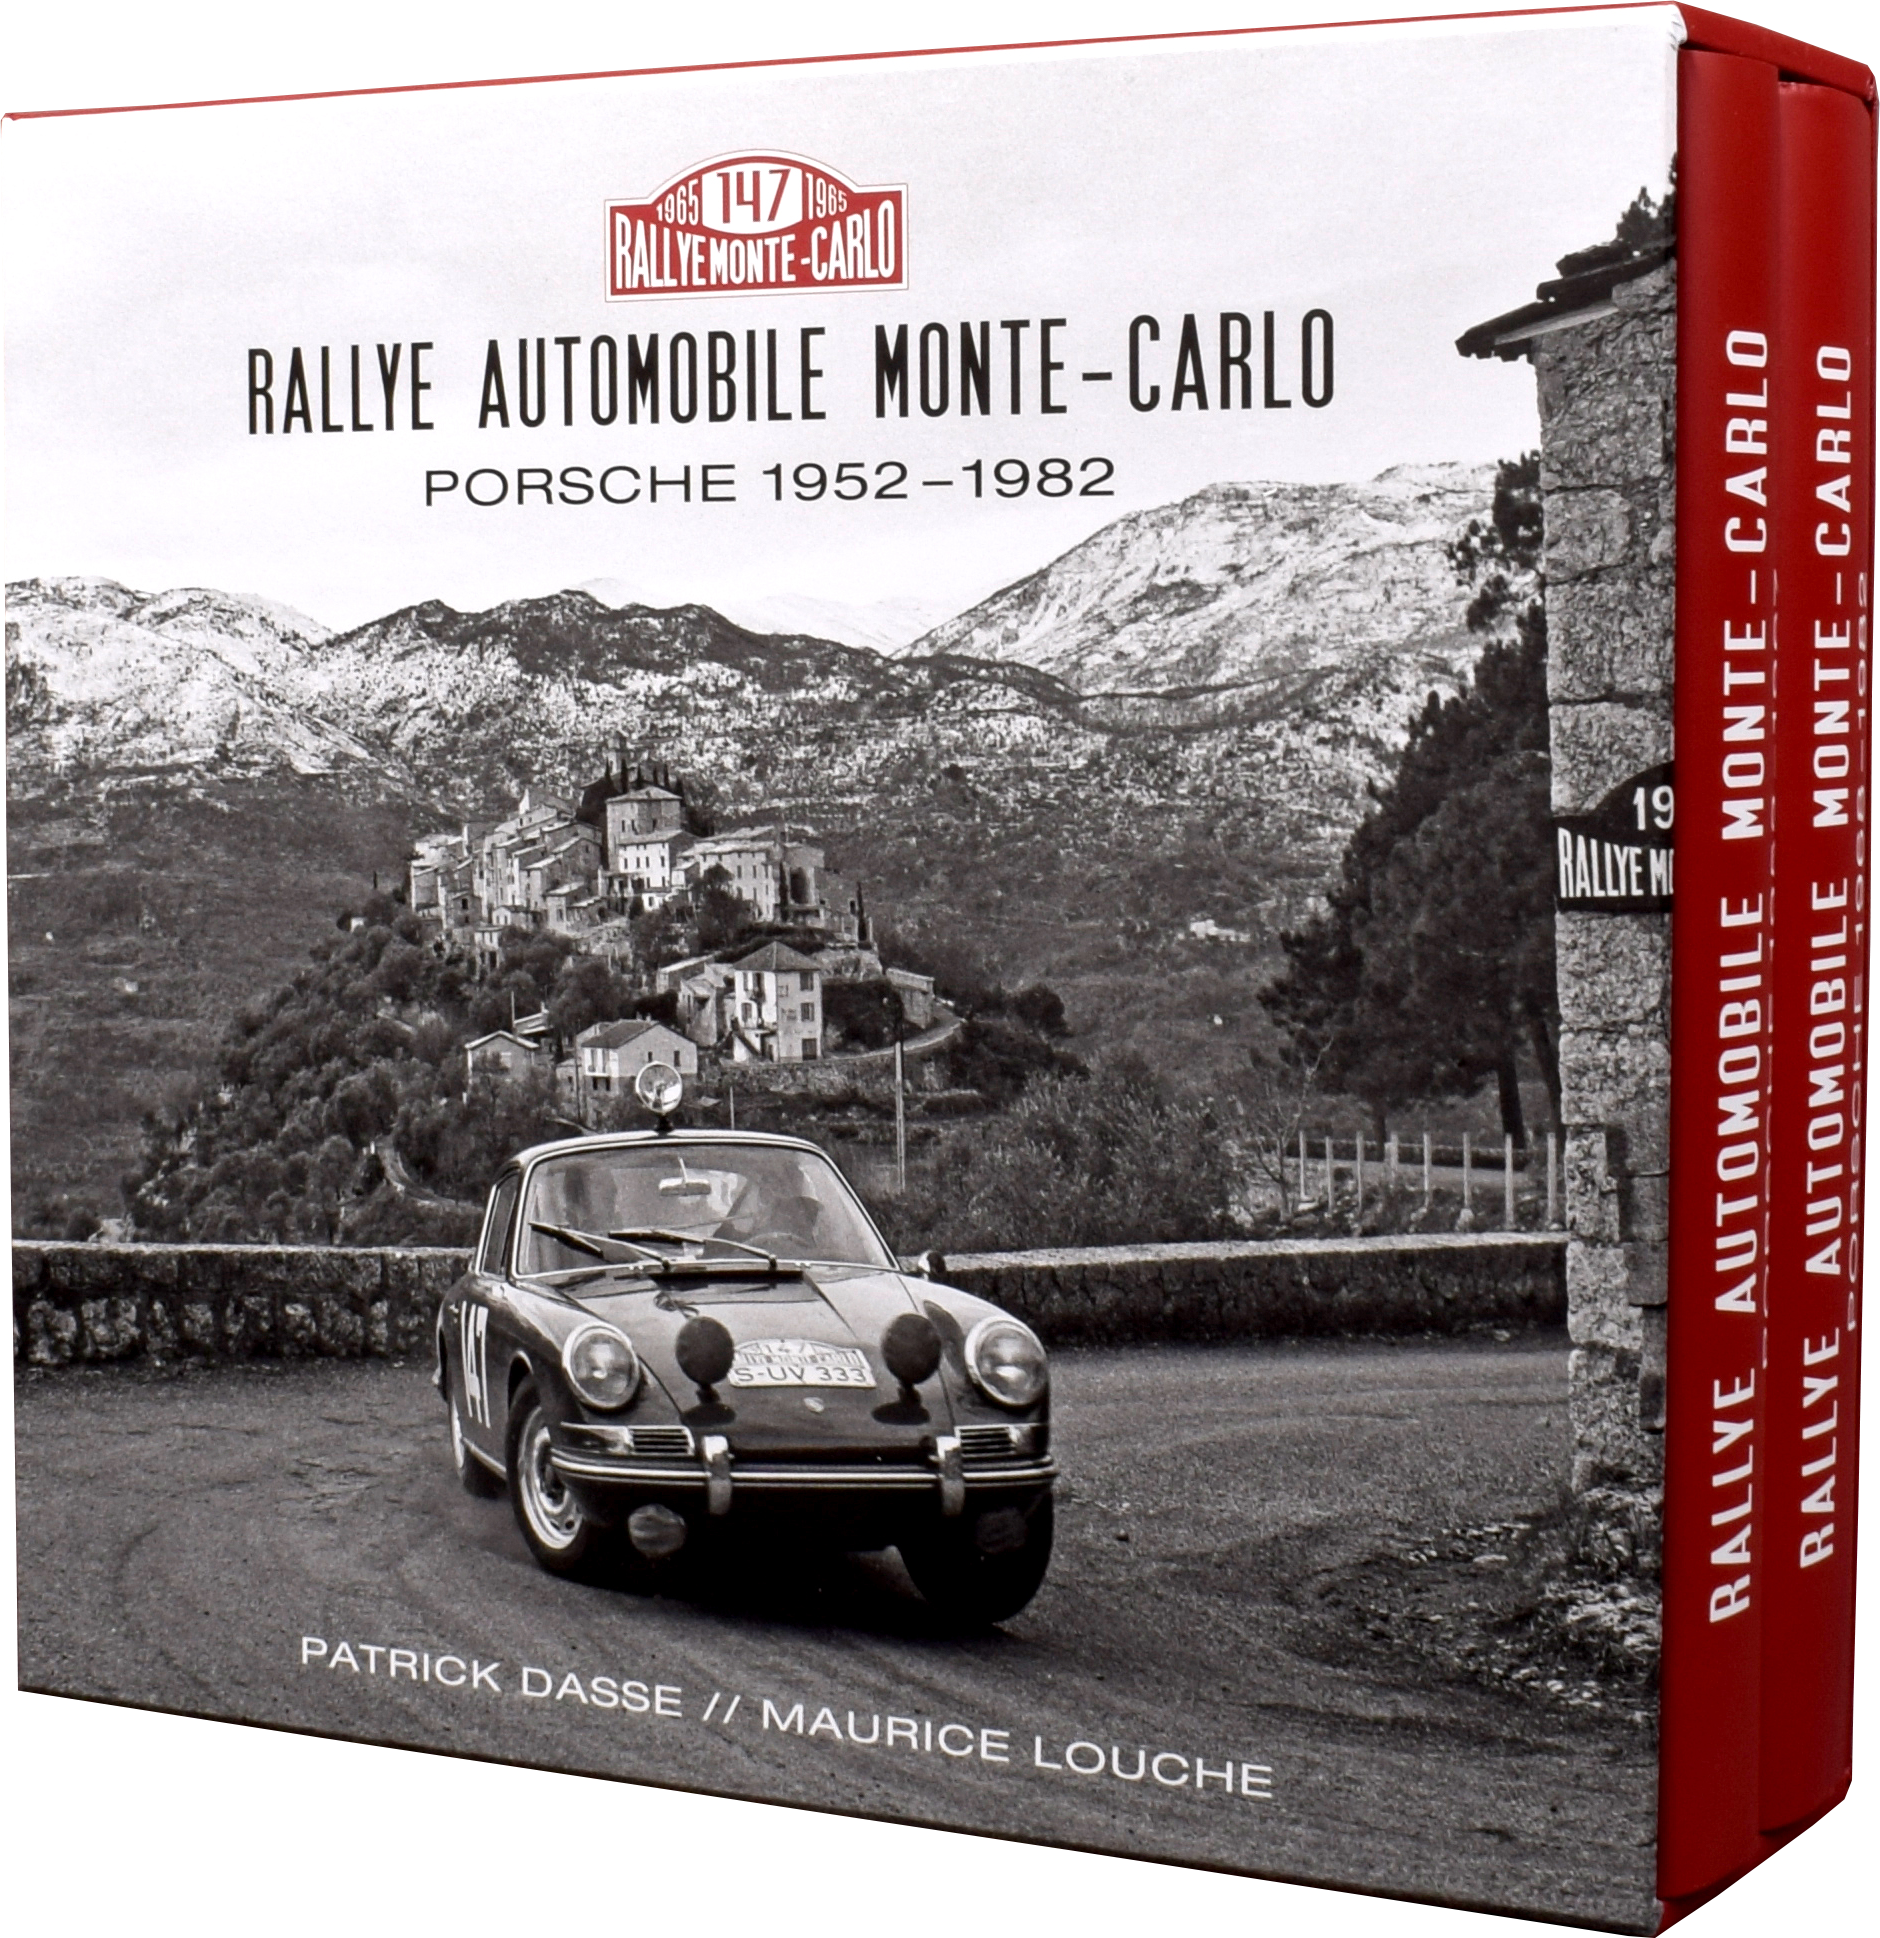 Autobooks Aerobooks The Worlds Fastest Bookstore Starting Circuit Diagram For 1952 Oldsmobile All Models Porsche In Monte Carlo Rally 1982